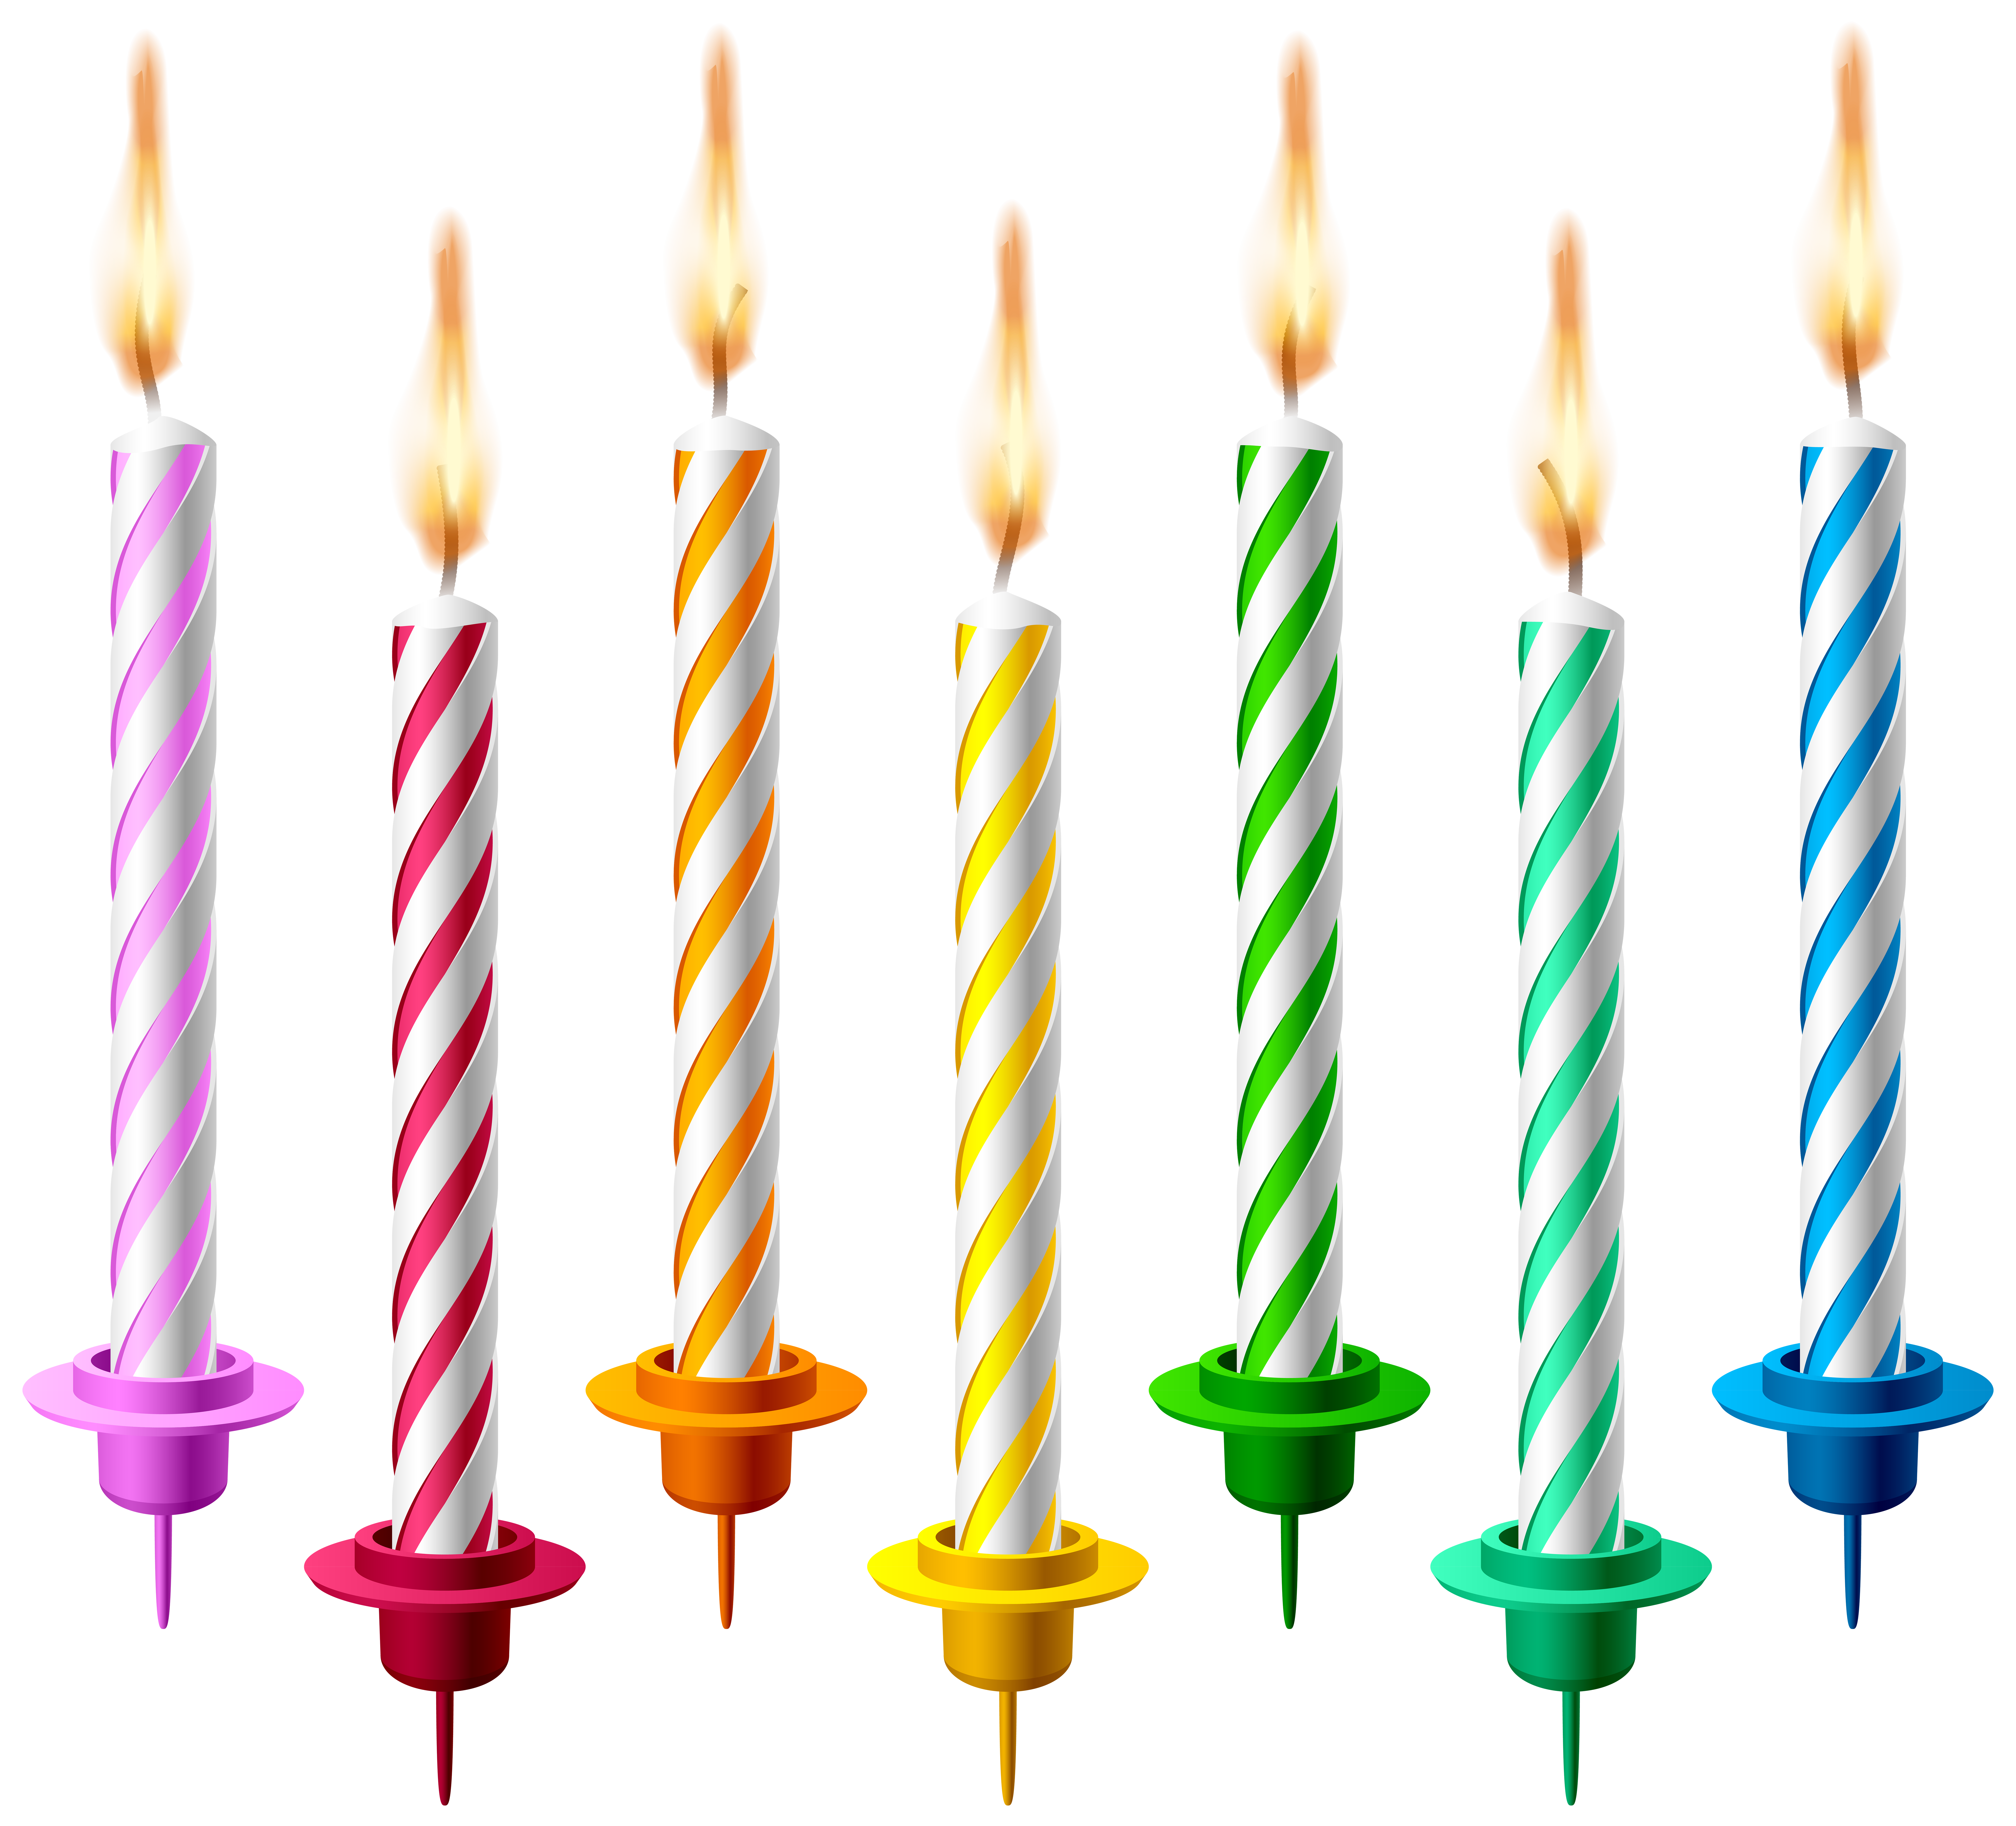 Birthday candle clipart animated clipart black and white download Birthday Candles PNG Transparent Clip Art Image clipart black and white download